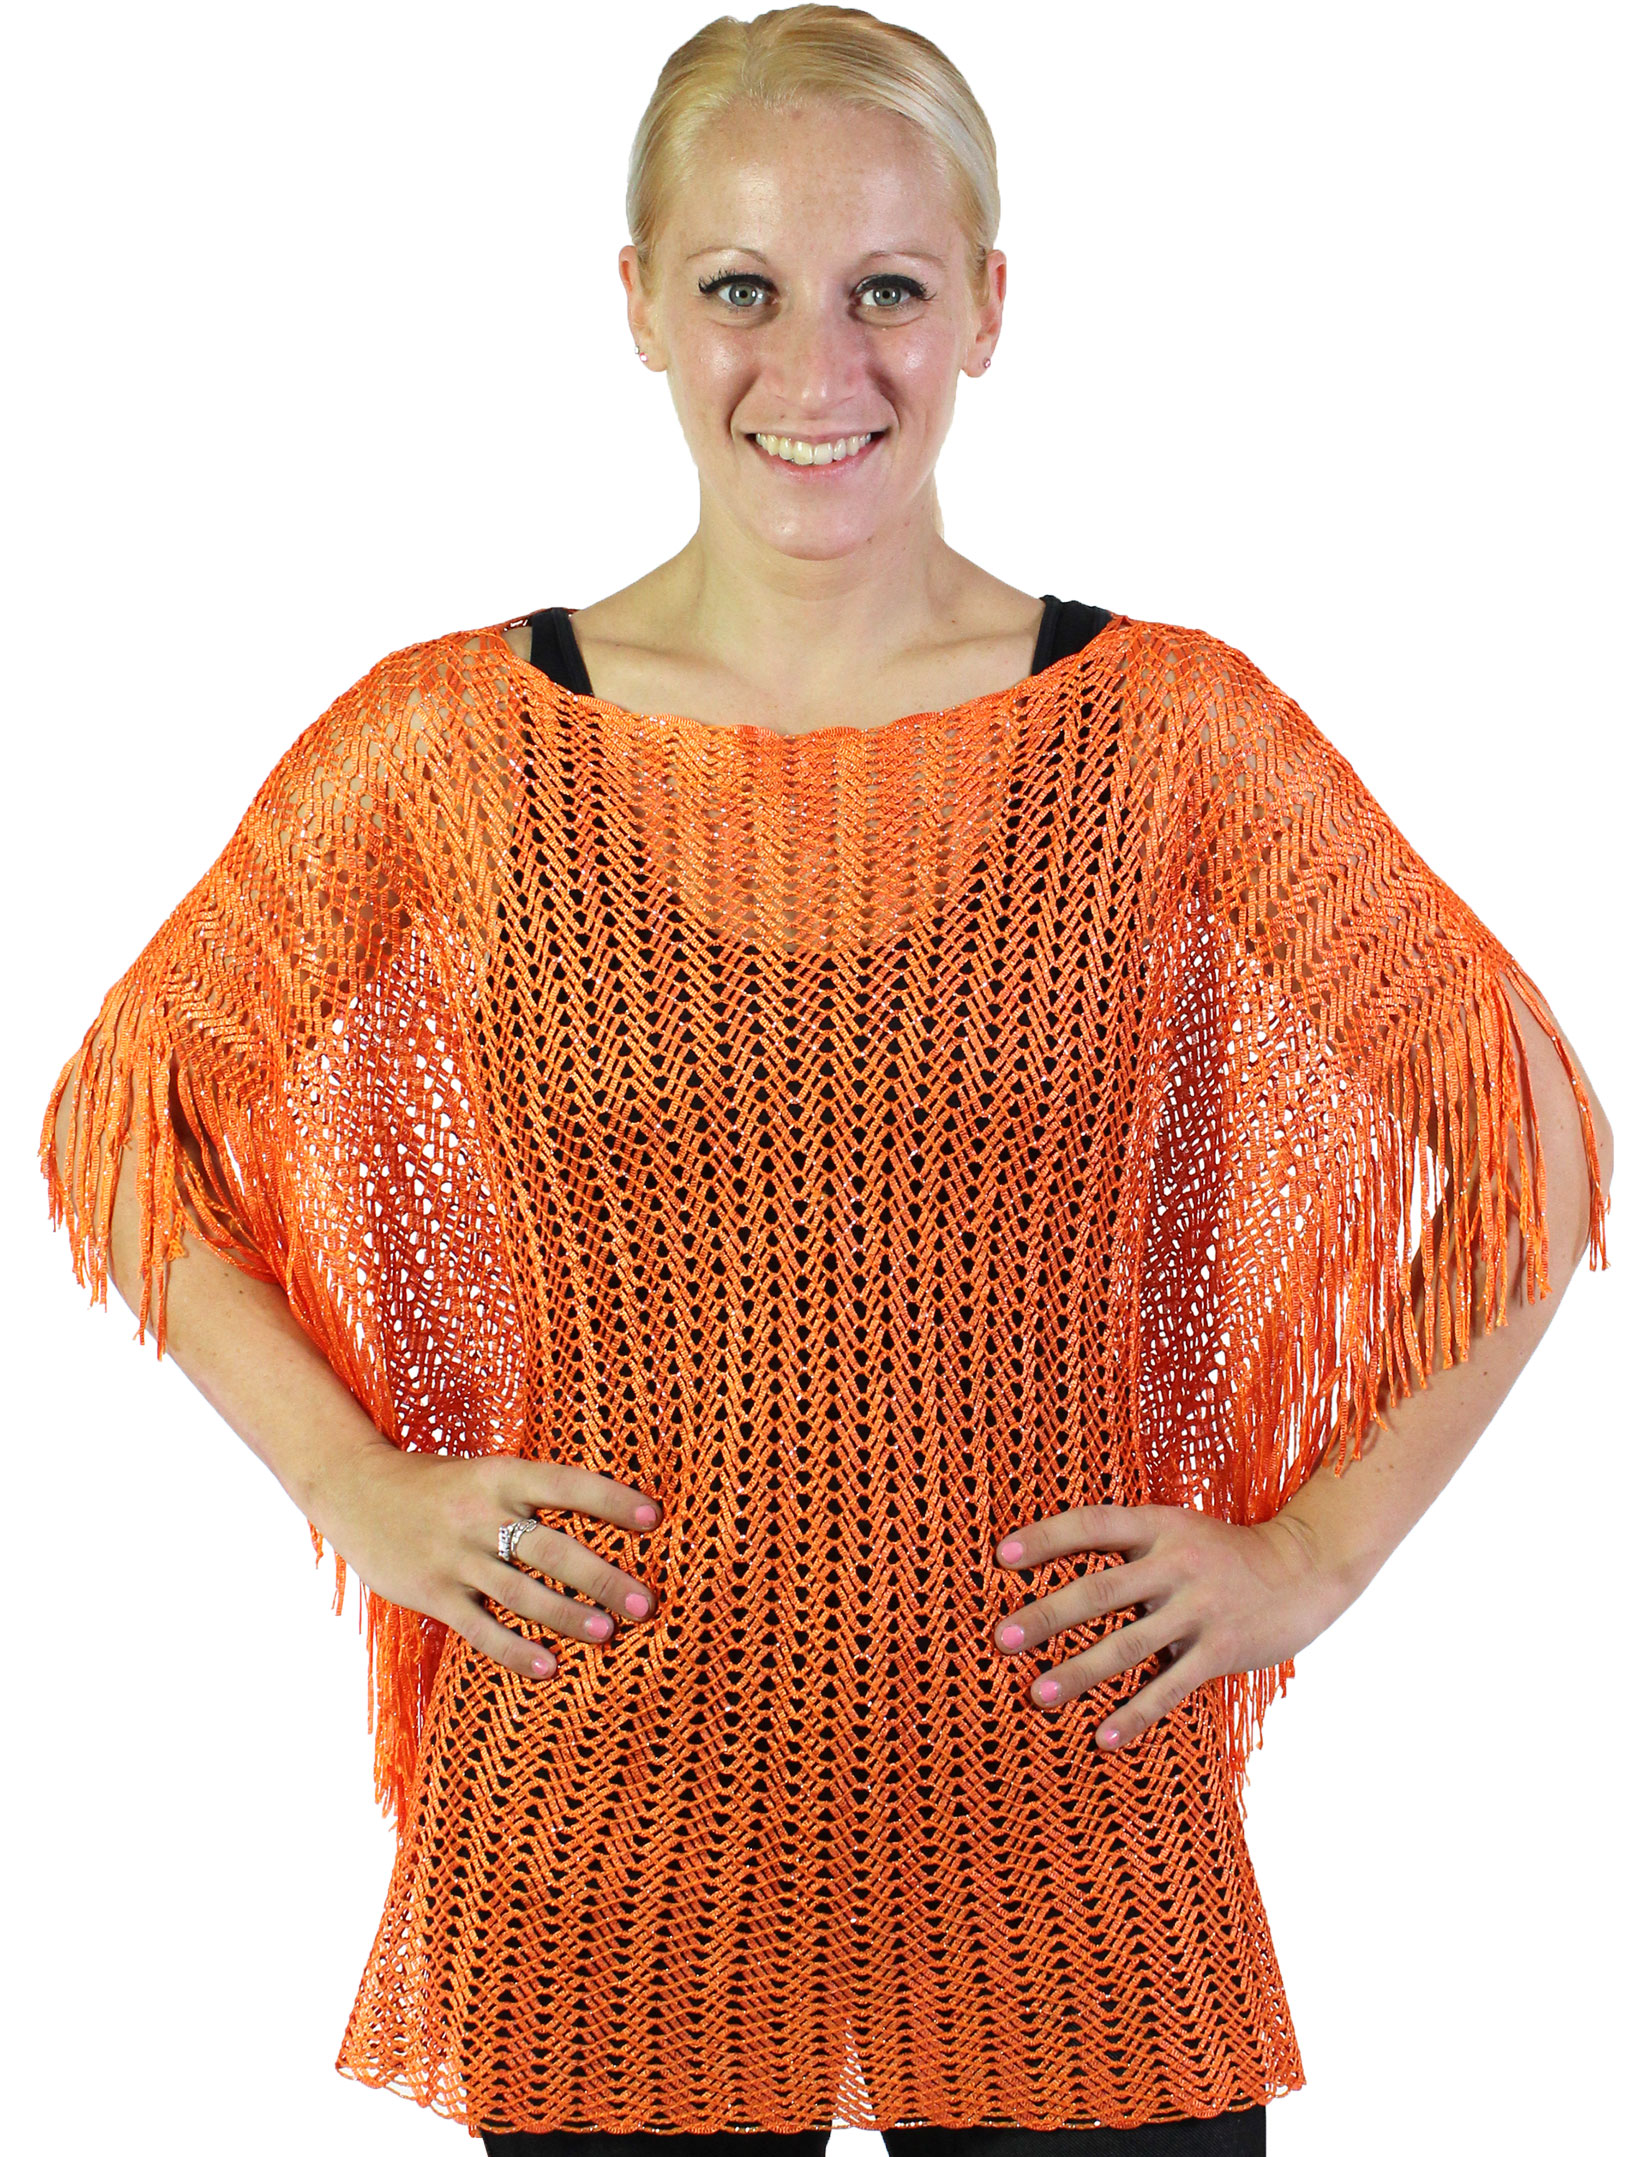 Poncho - Fishnet Metallic 6604 & 6608 - Orange (#04)